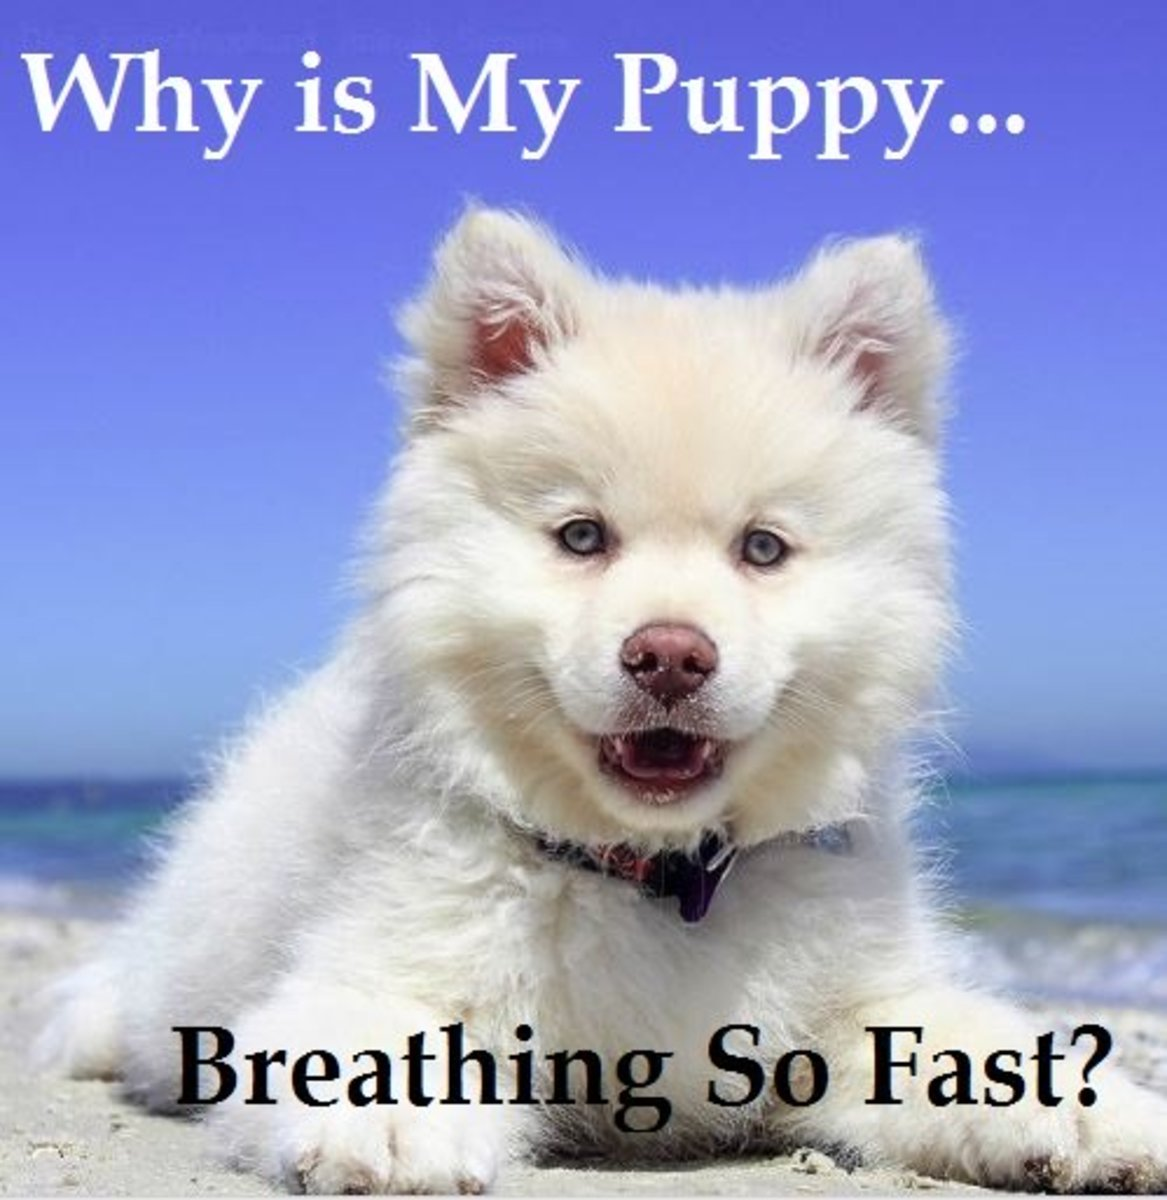 Puppies may breath a bit faster than adult dogs.